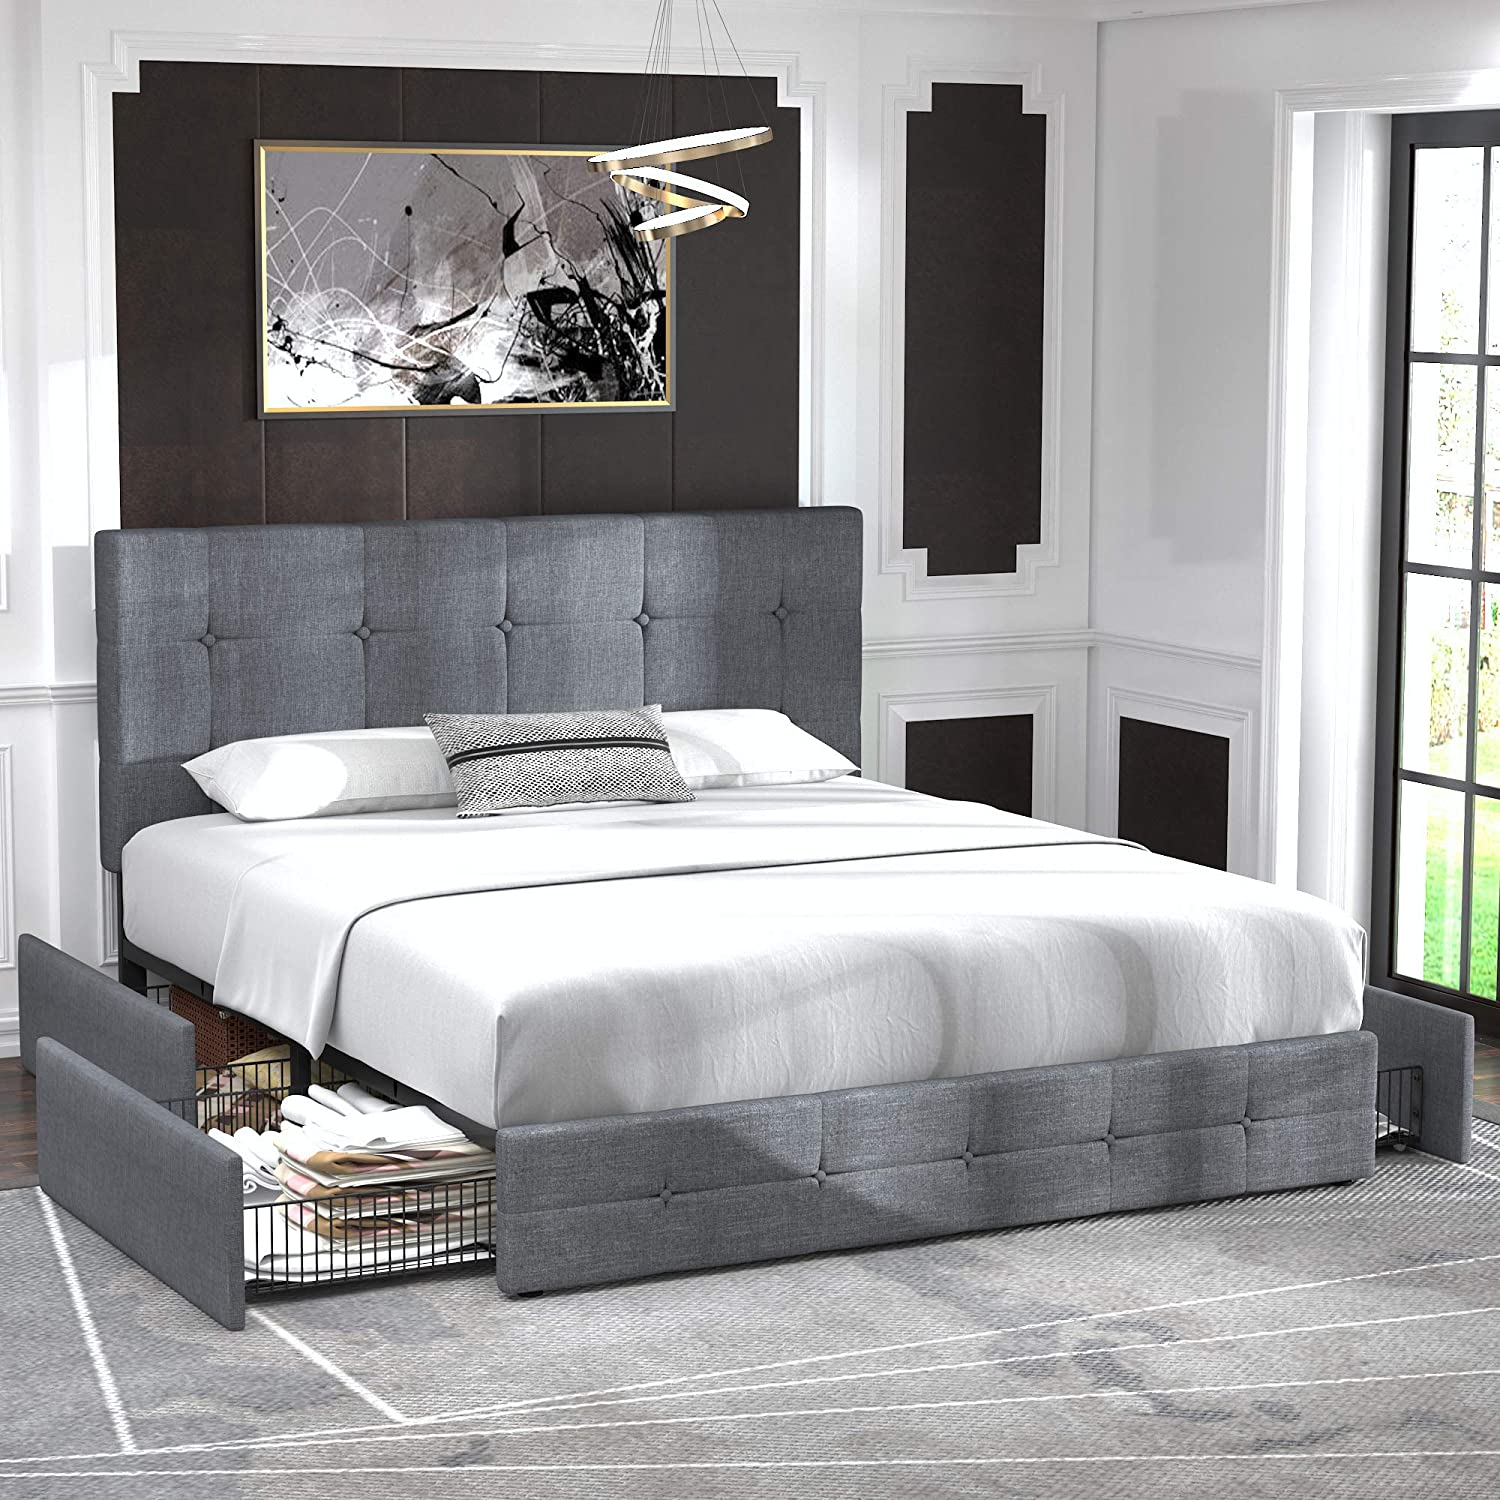 3. Allewie Queen Platform Bed Frame with 4 Drawers: